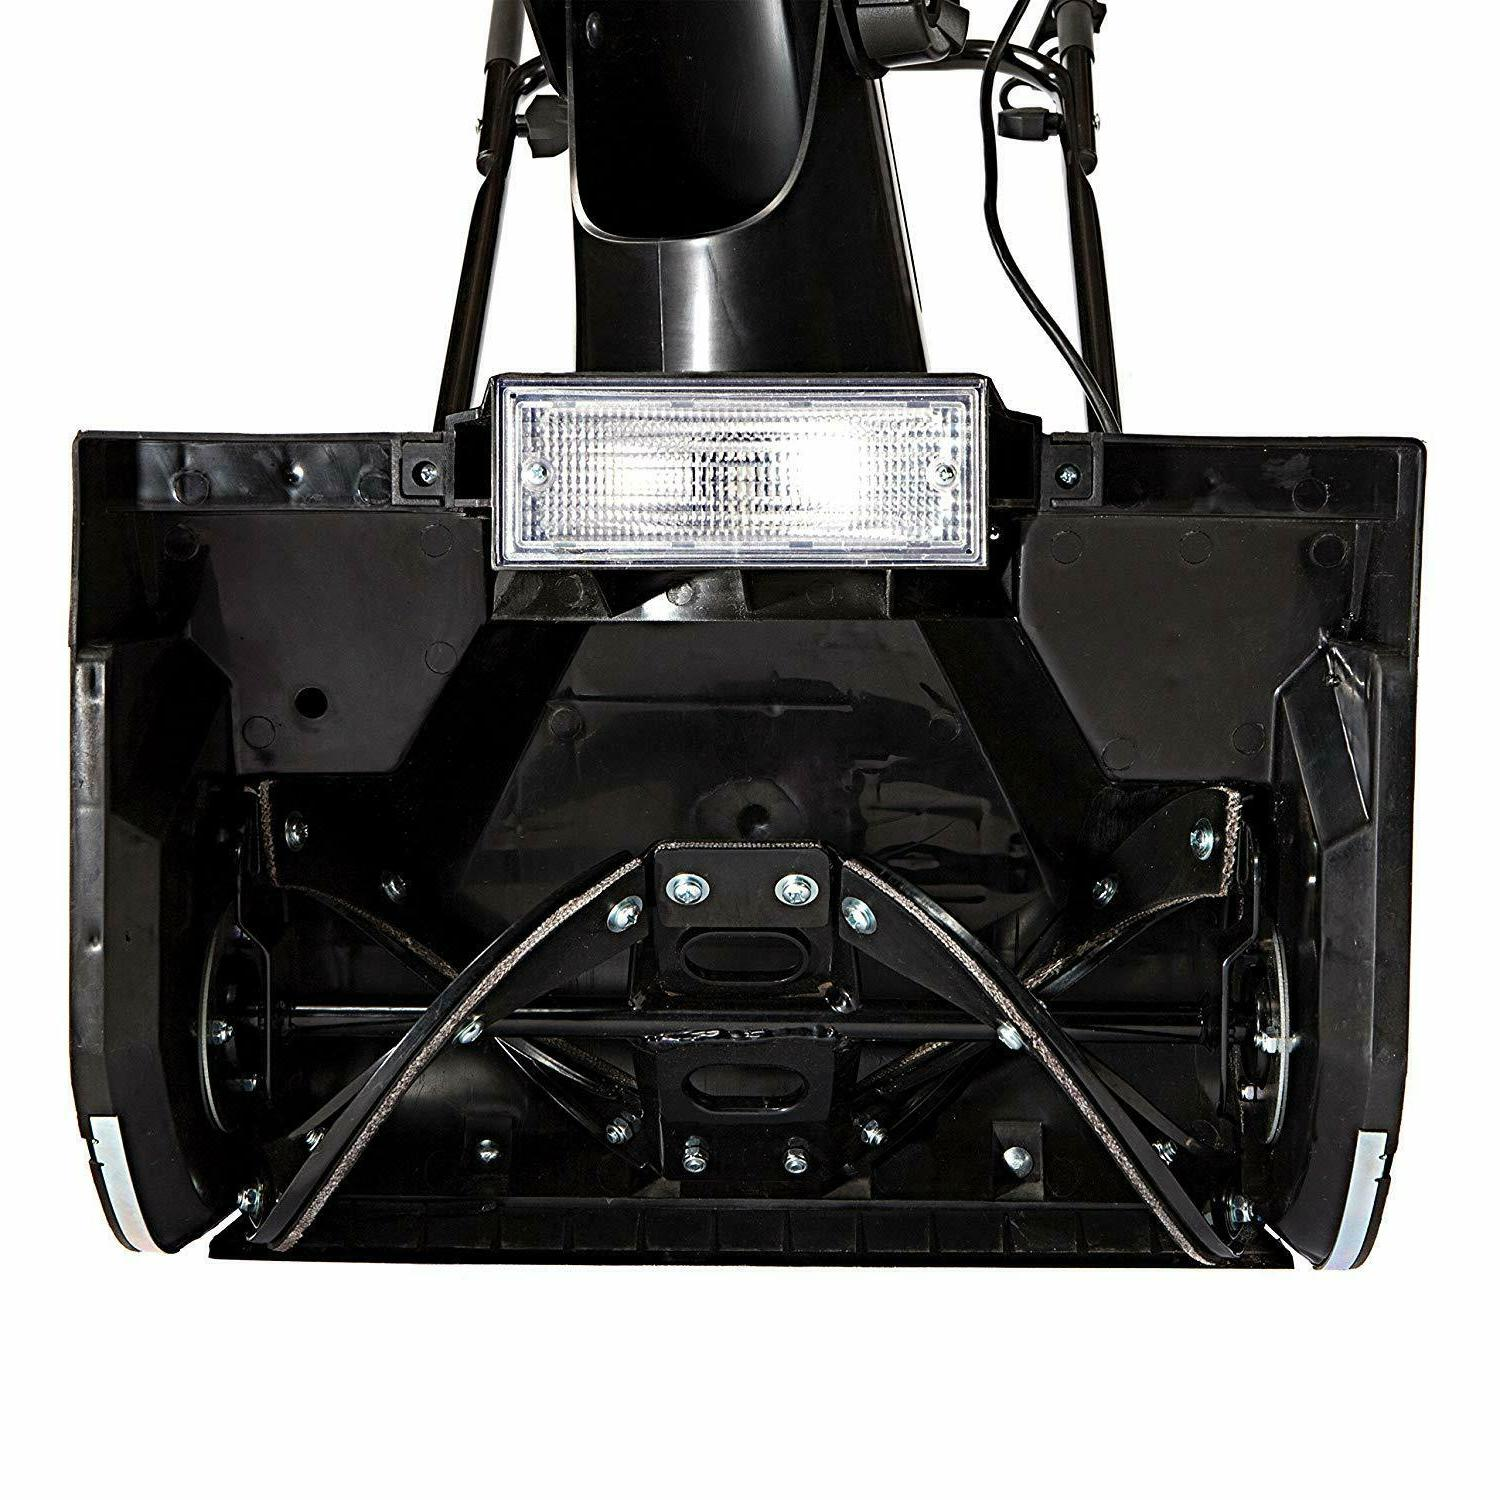 Snow Ultra 18-Inch Electric Snow Thrower Light